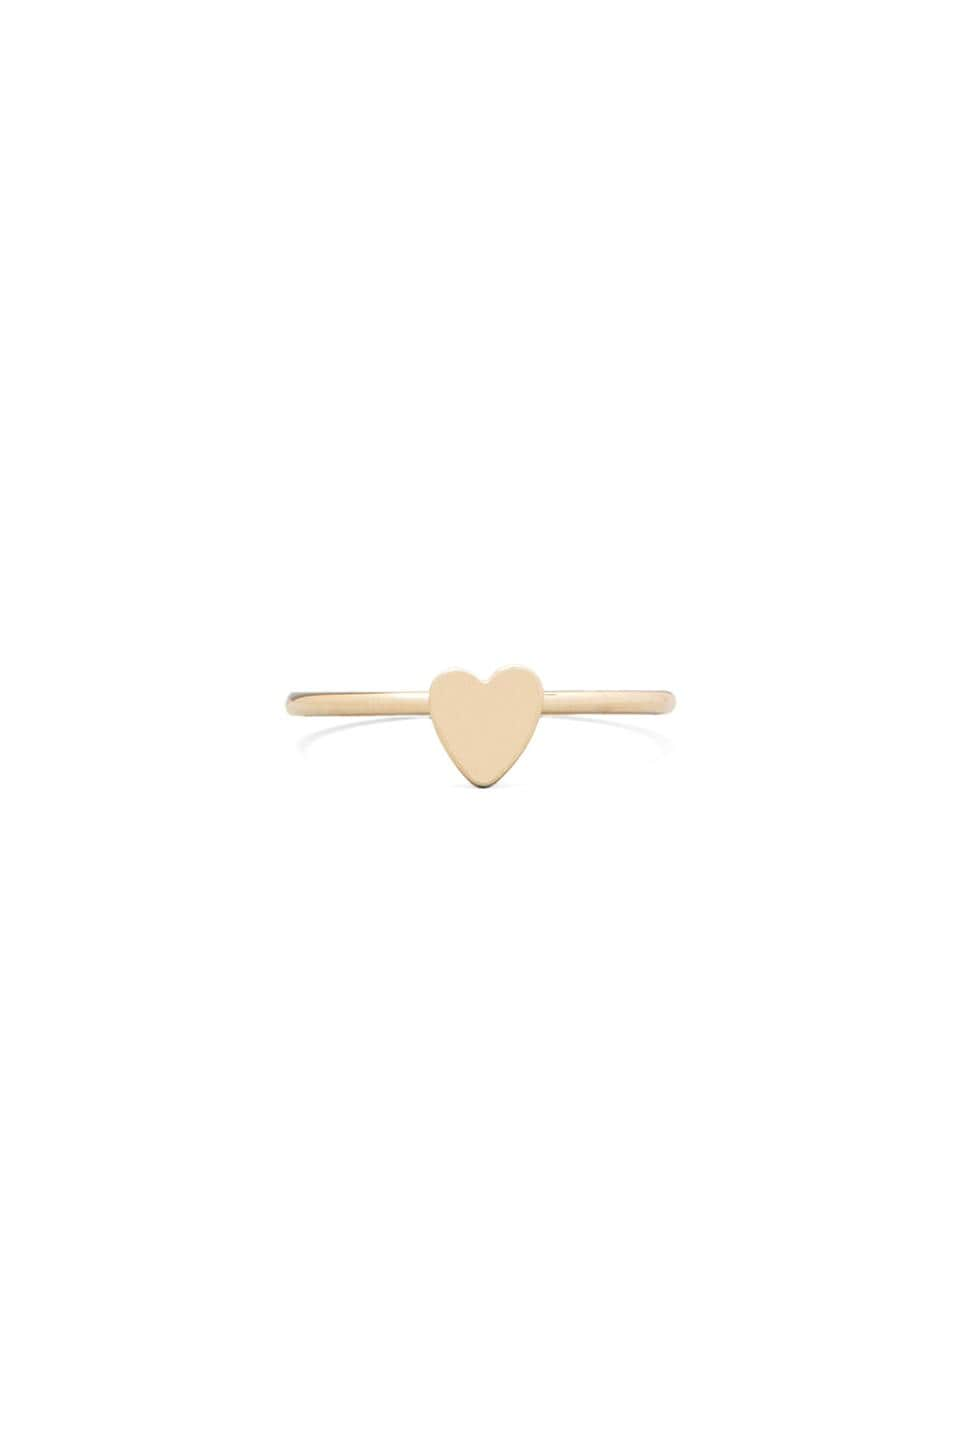 Bing Bang Heart Ring in Yellow Gold